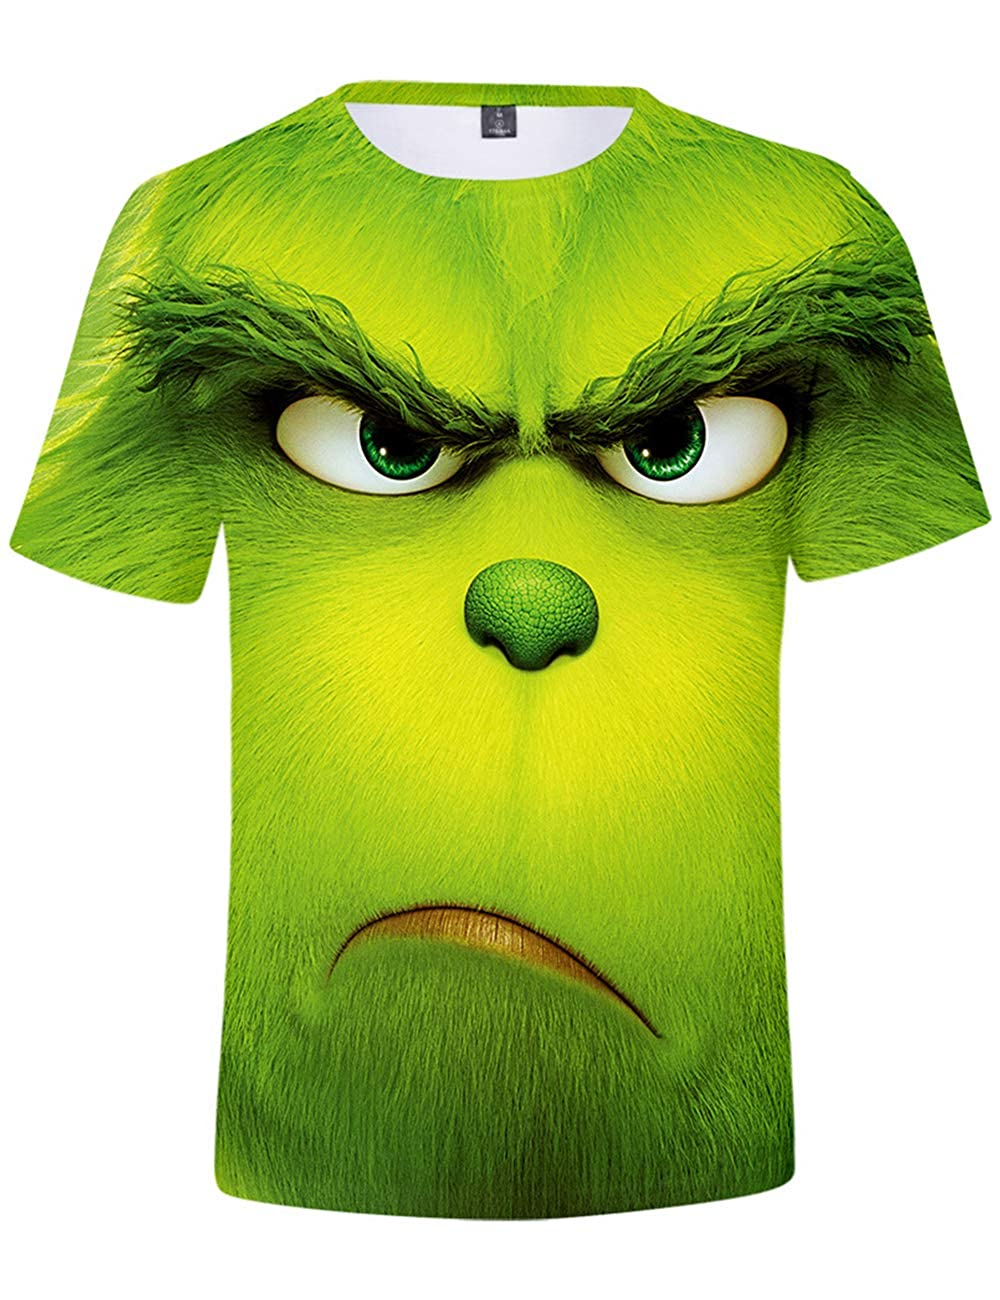 Grinch T Shirt Men and Women Teen Boys Girls Grinch Big Face 3D Digital Printed Shirt Unisex Short Sleeve Ladies Movie Inspired Cool Tee Adults Casual Sport Tops Christmas Clothing